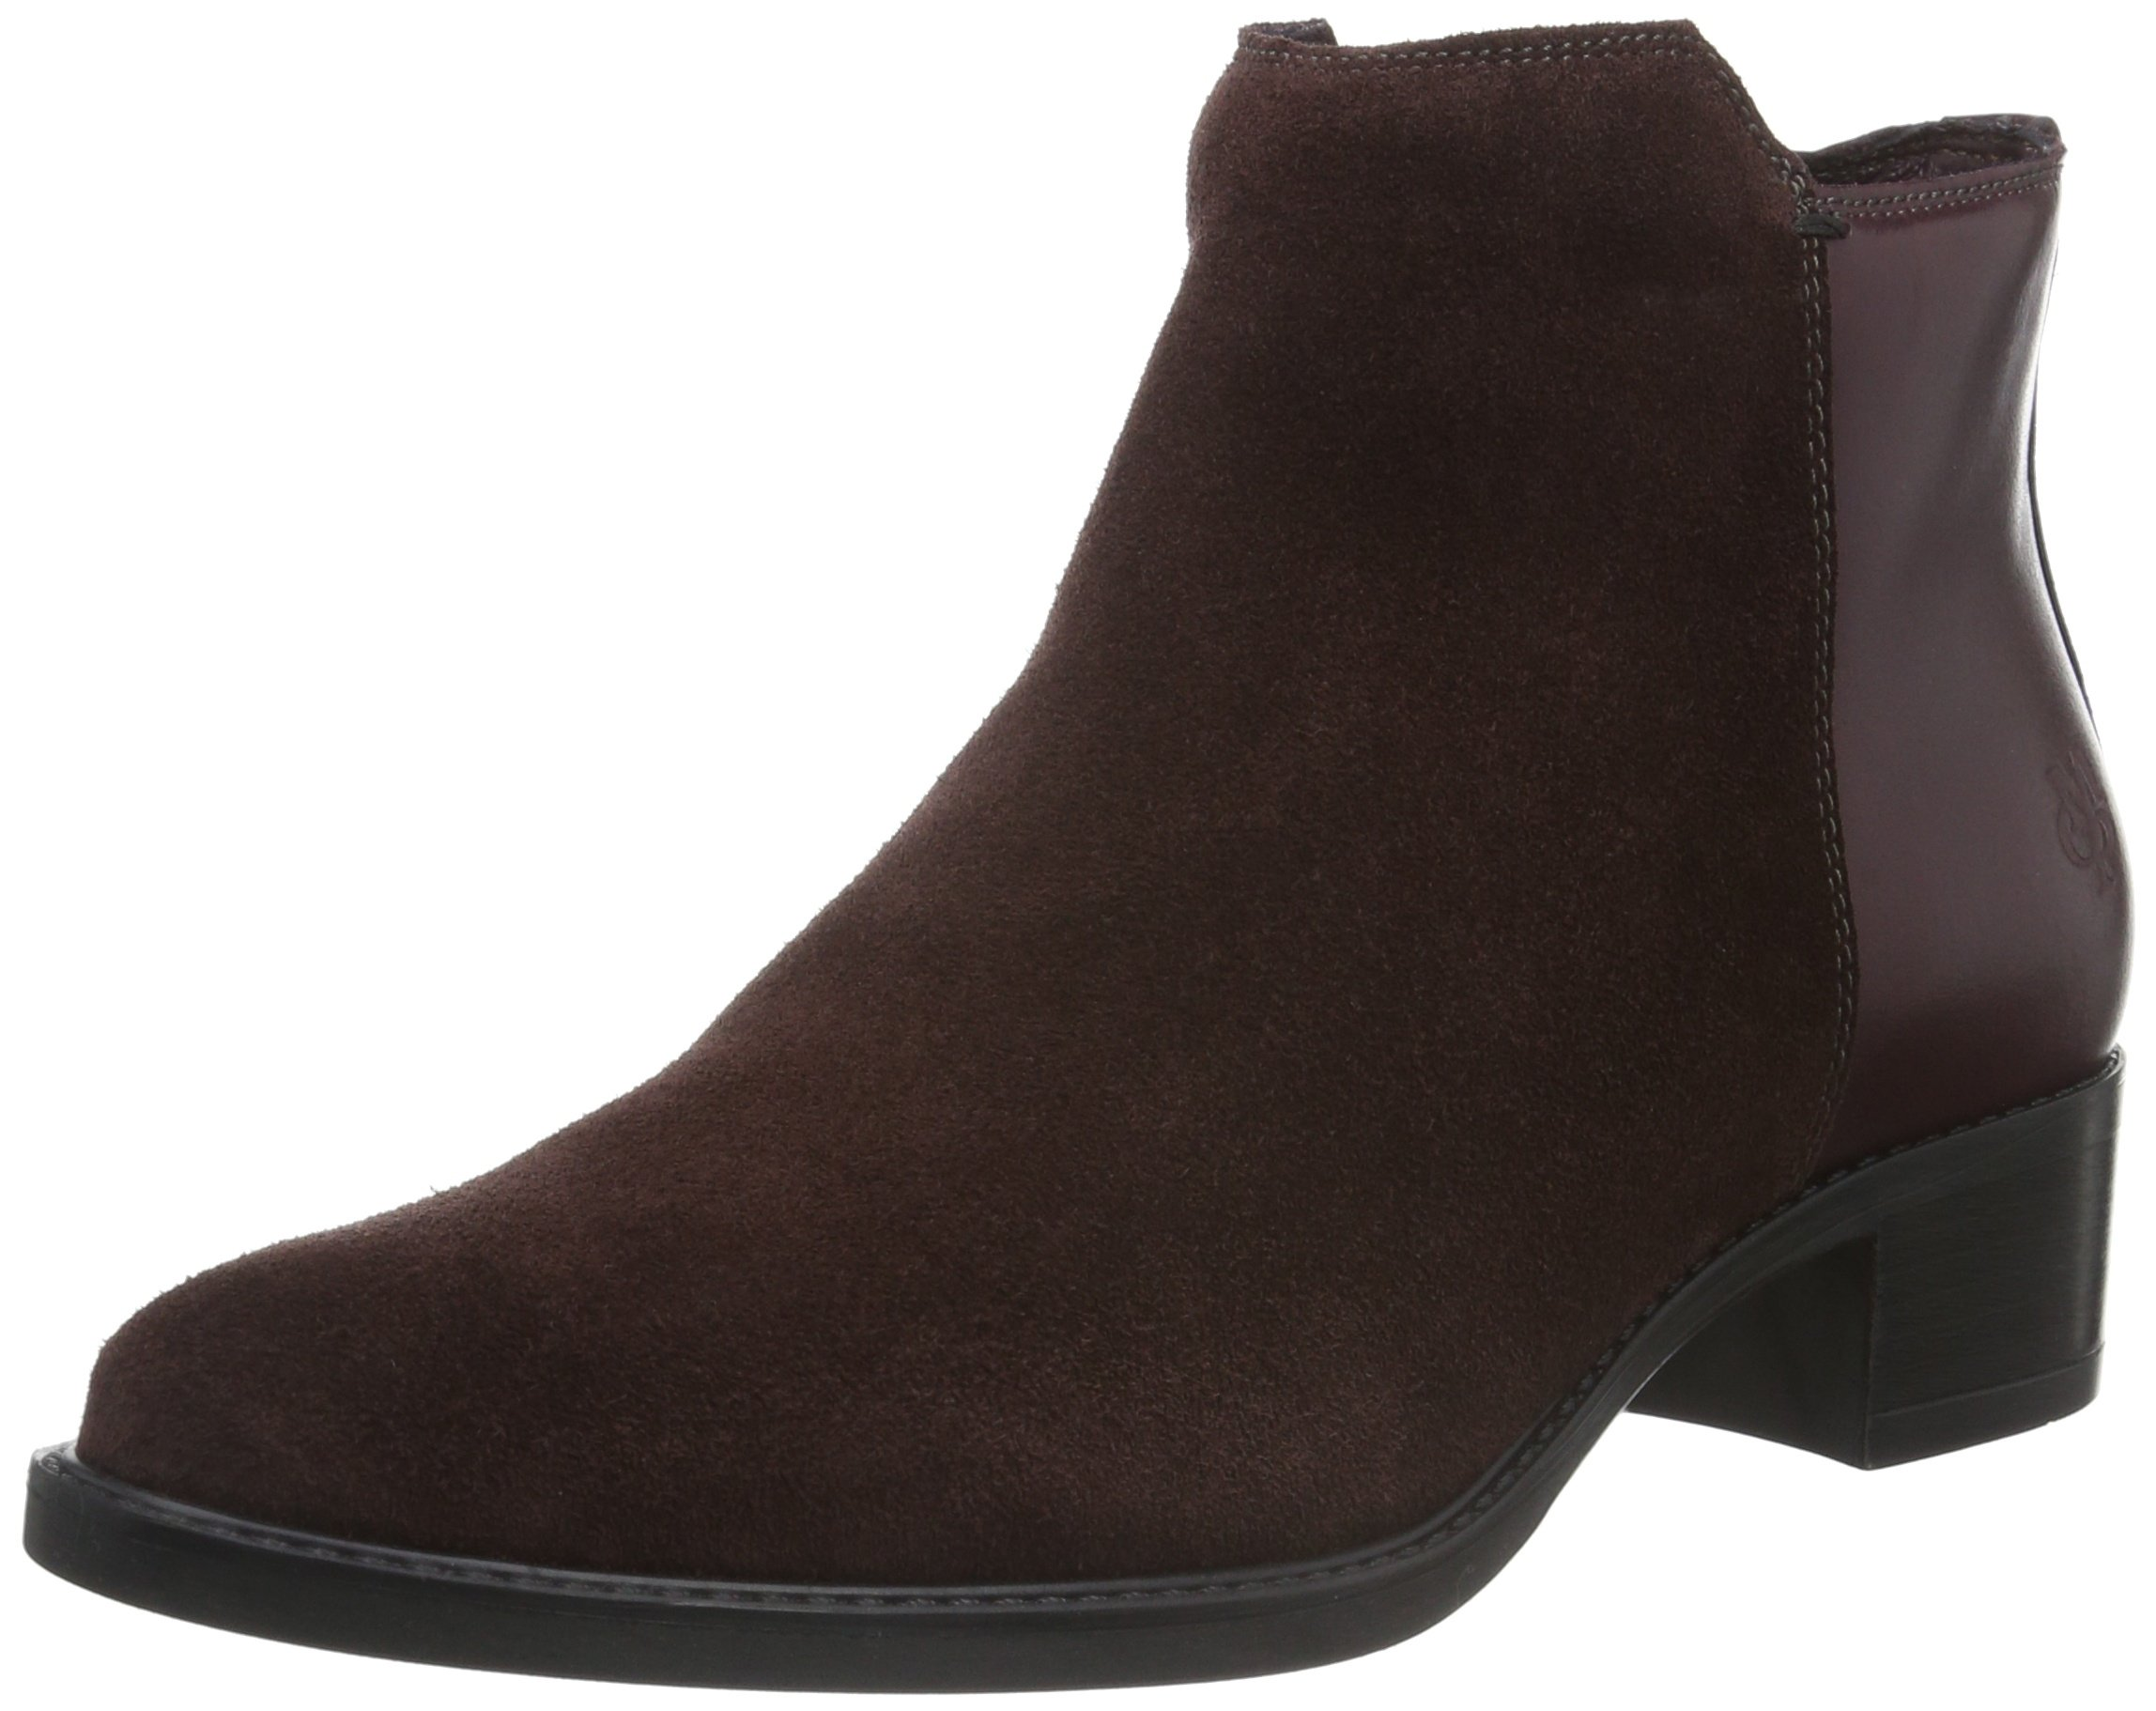 Marc Rotwine BootieBottes Mid 38539 Heel Classiques FemmeRouge O'polo HWE9I2D